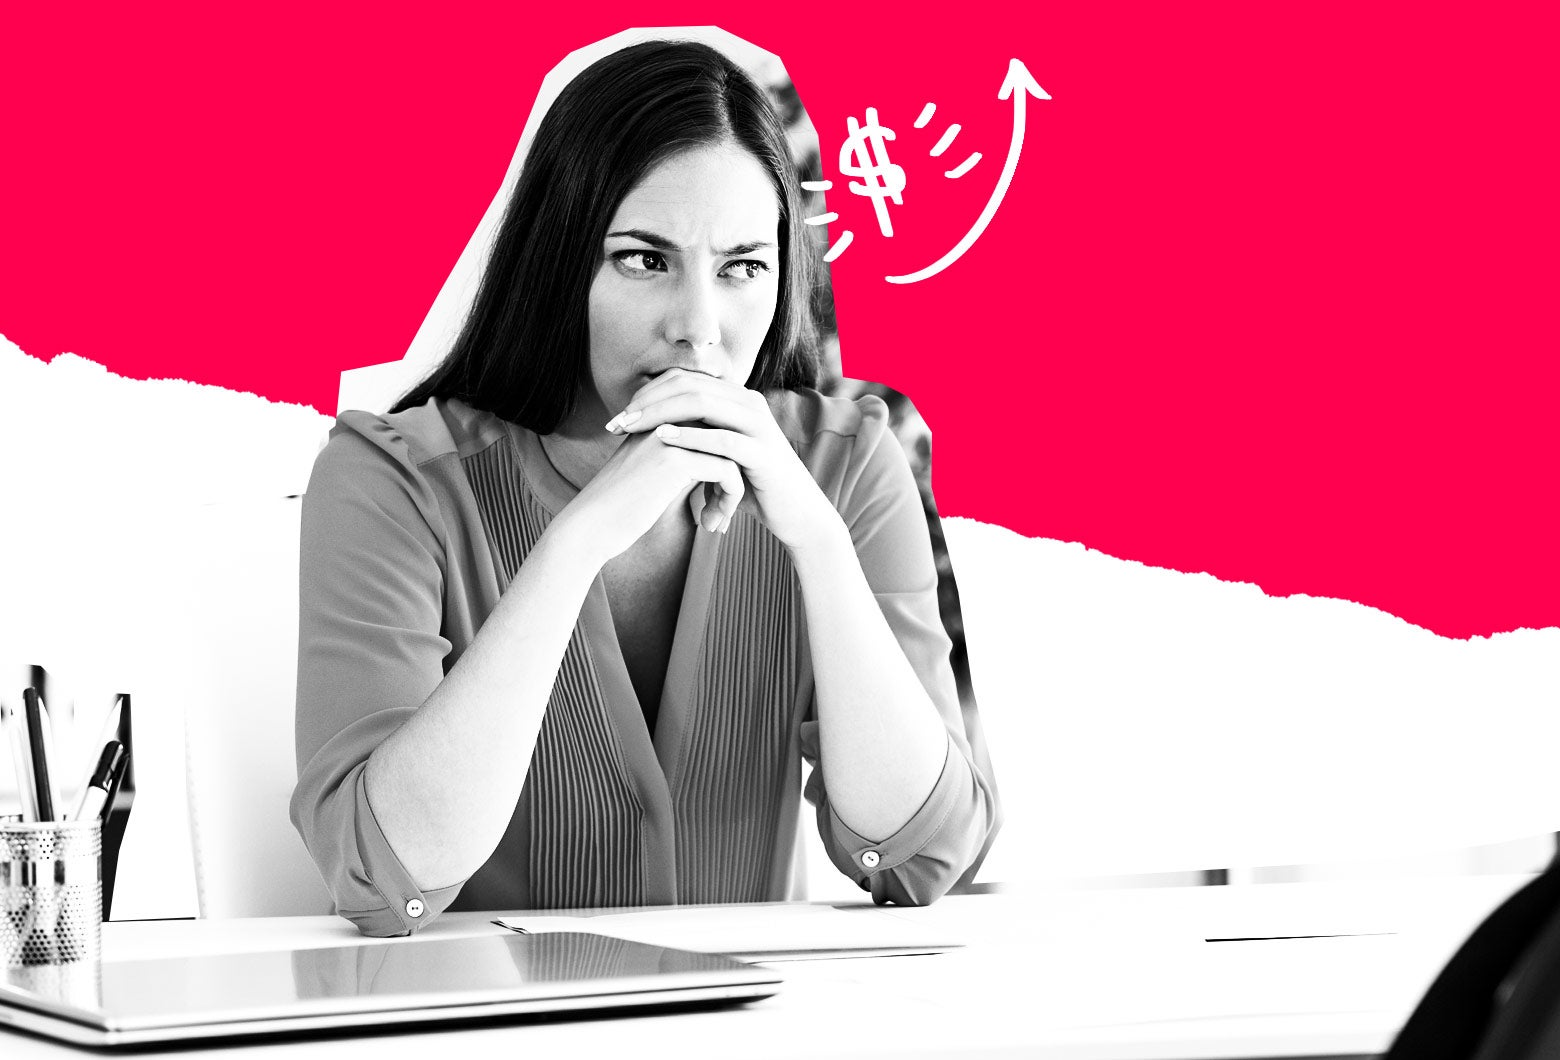 Photo illustration: A woman thinks as she sits at a desk. Photo illustration by Slate. Photo by Thinkstock.